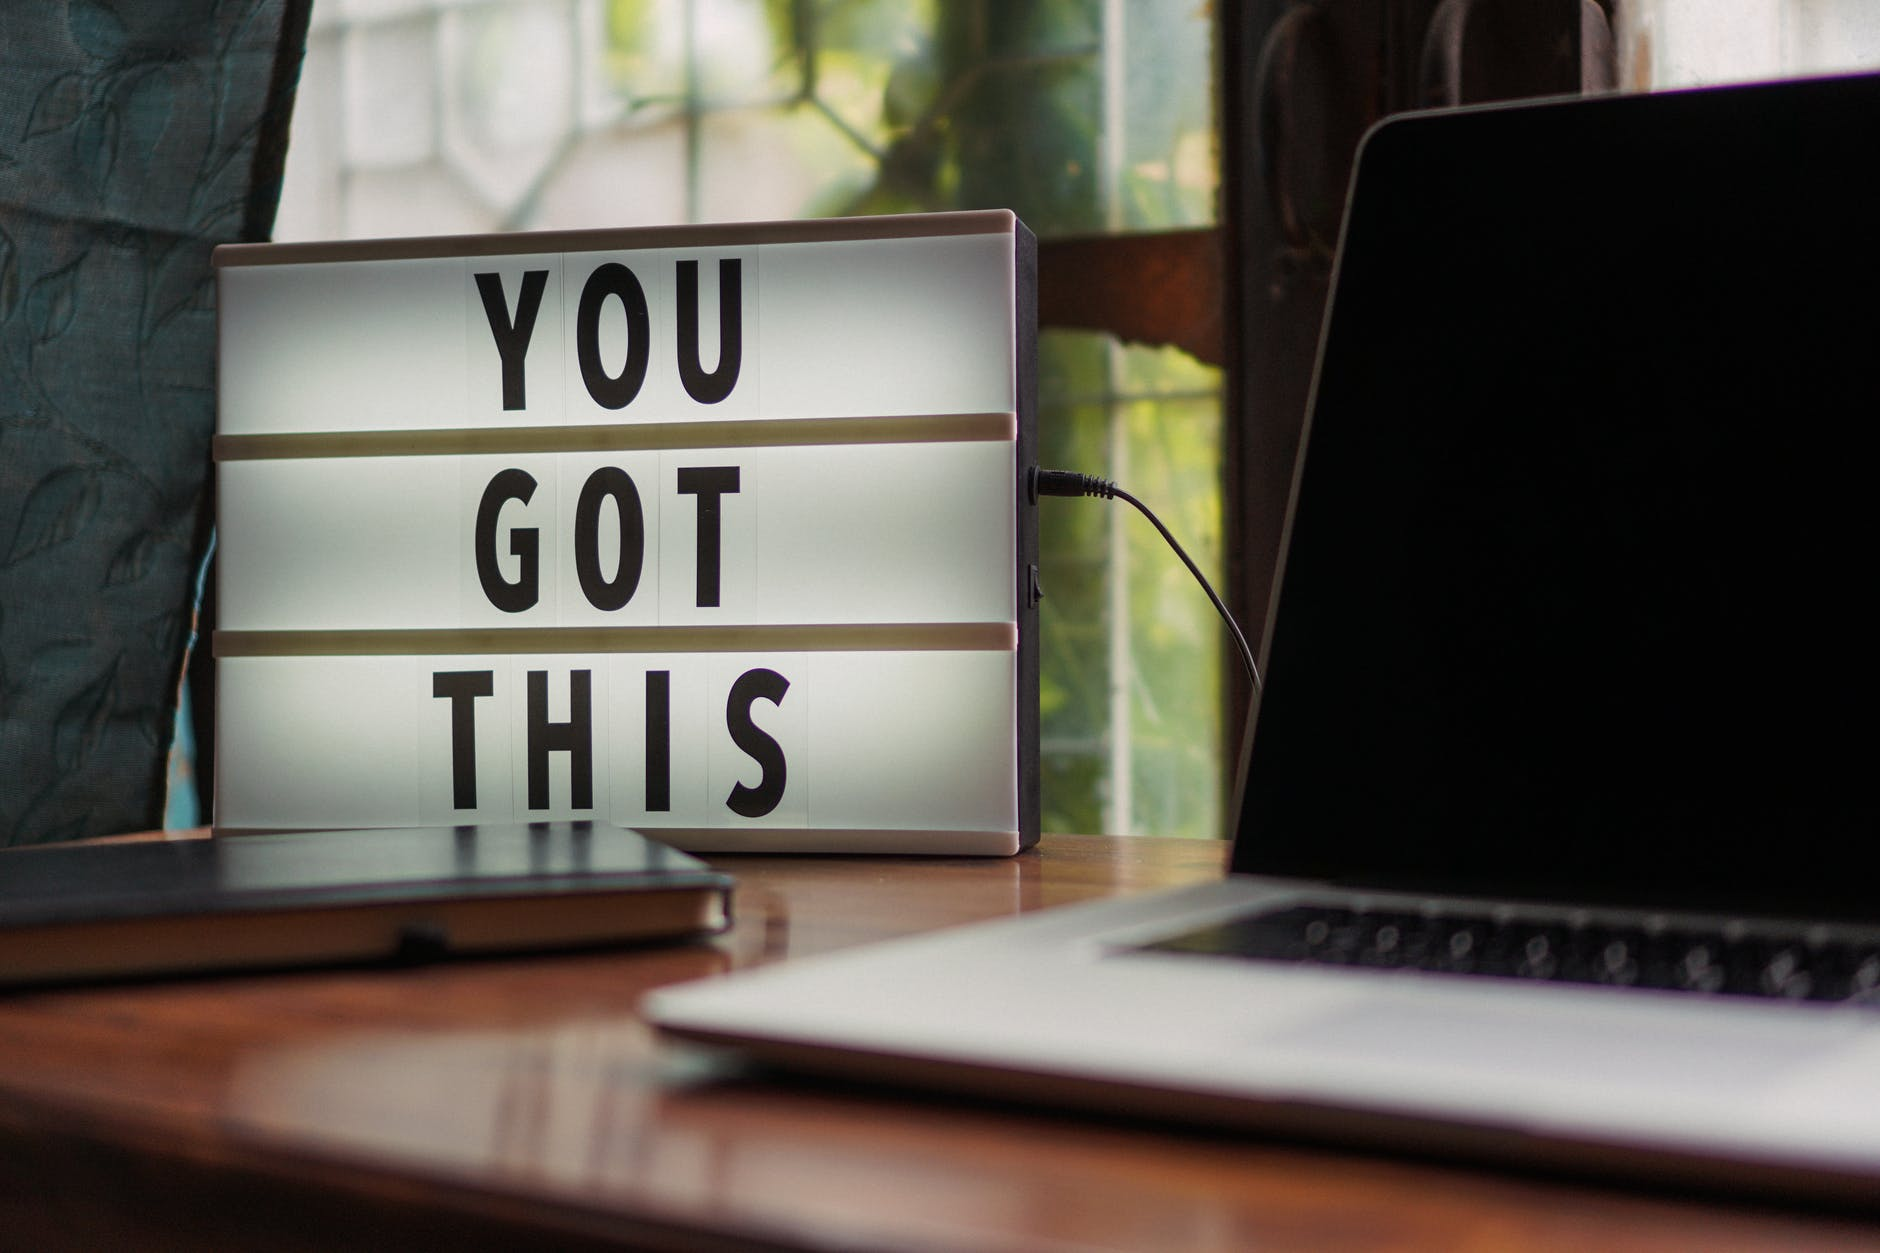 Macbook on a brown desk with a lighted up sign in the background to the left, stating you got this in the frame. Used to represent even though we deal with Imposter Syndrome, we are enough.